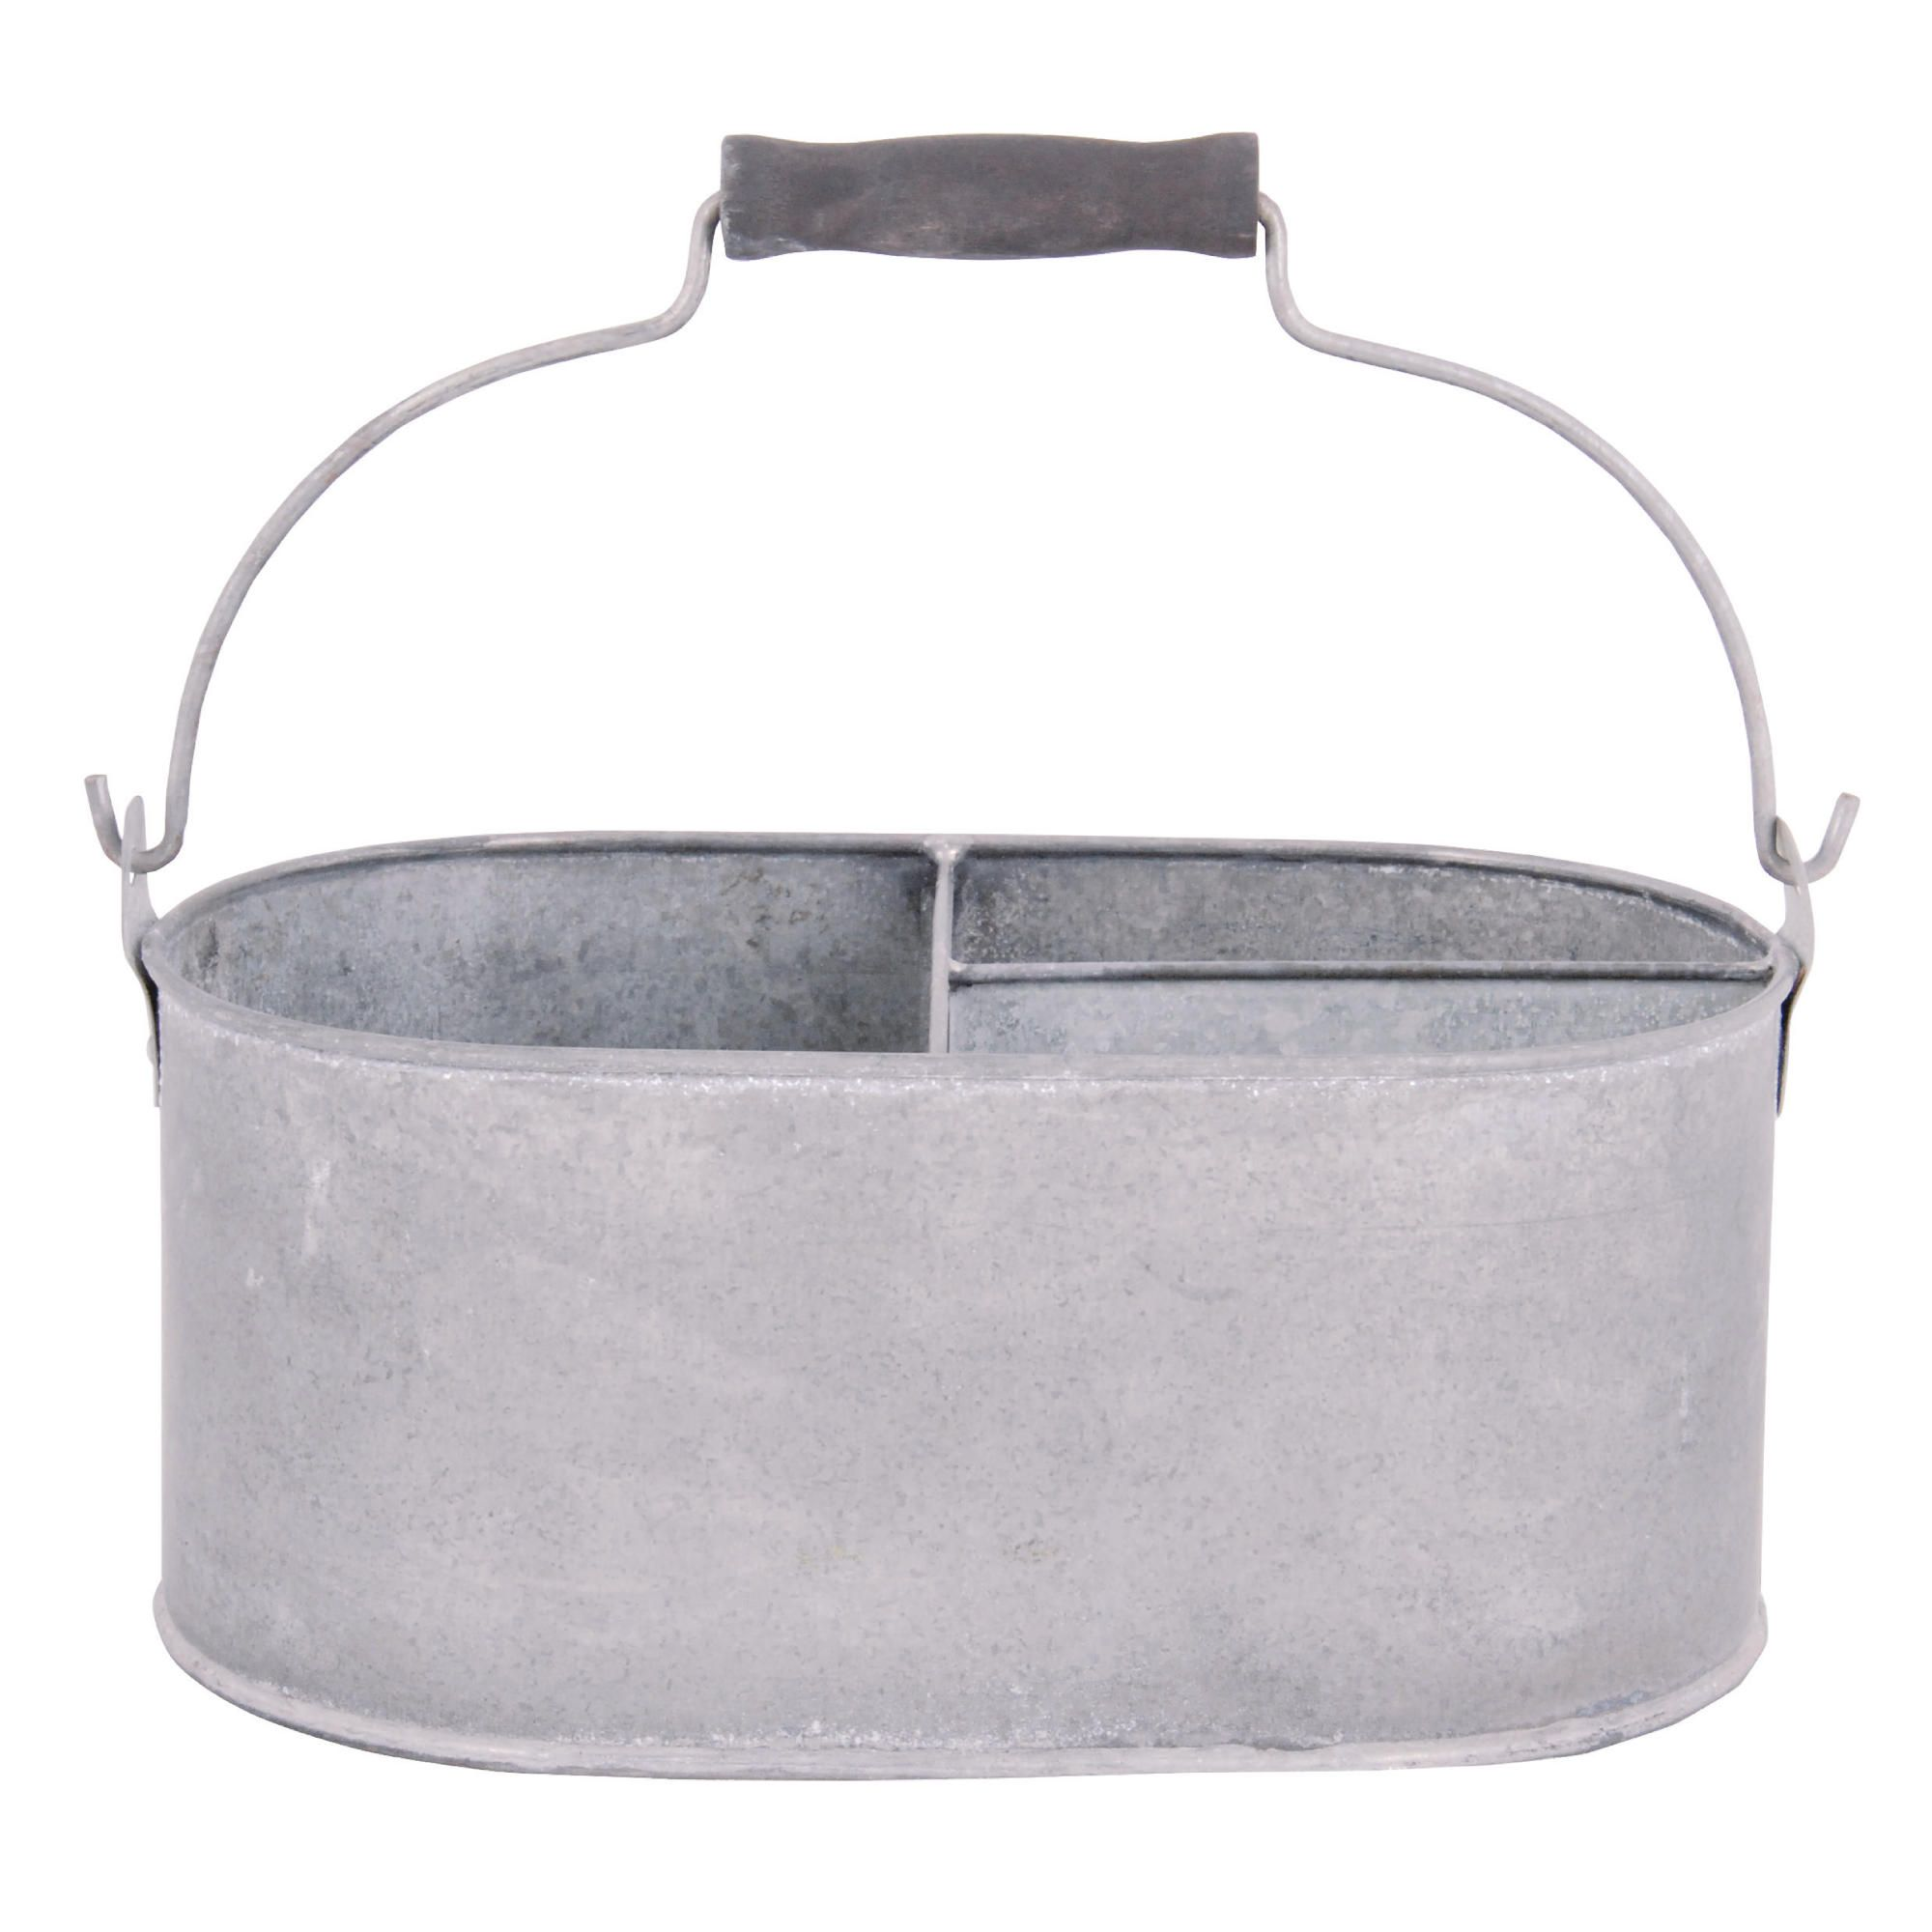 Offerta: Fallen Fruits Old Zinc Oval Basket With Storage, Small